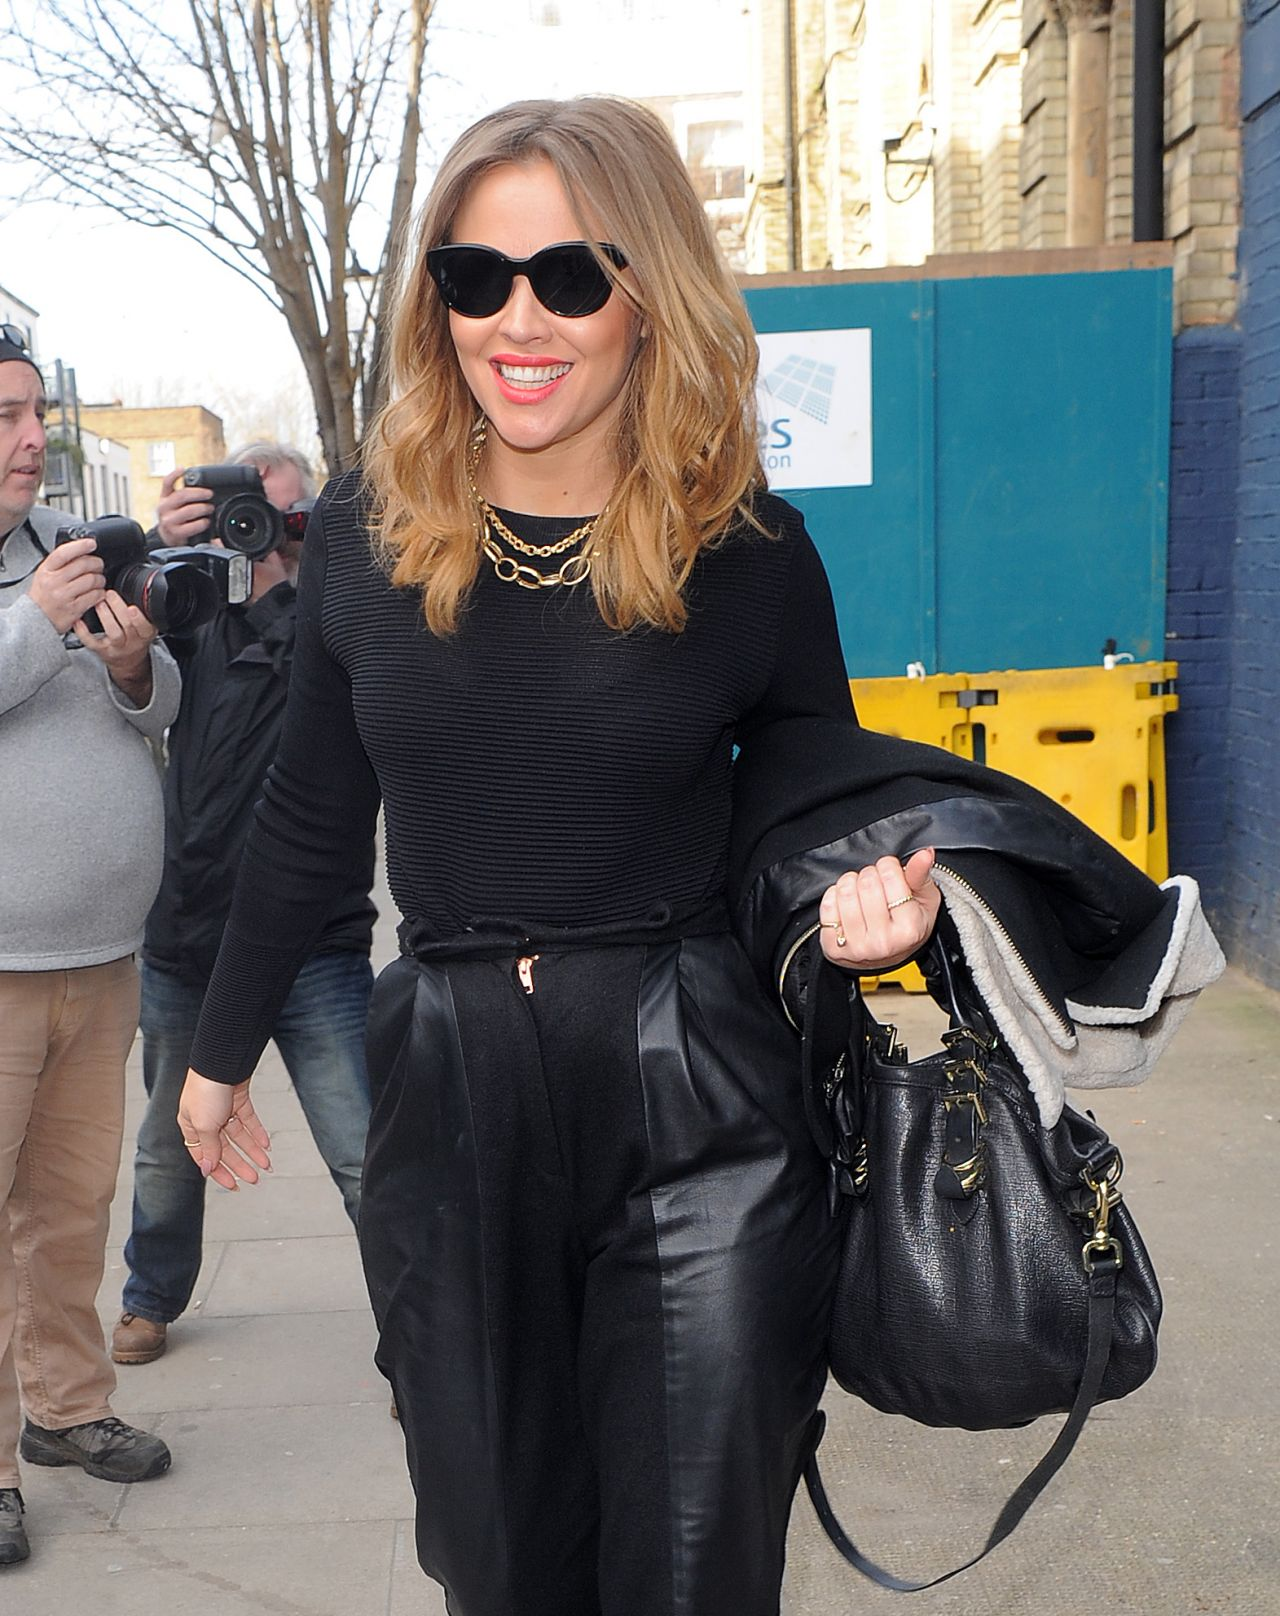 Kimberley Walsh - England 2014 World Cup Song Recording, March 2014